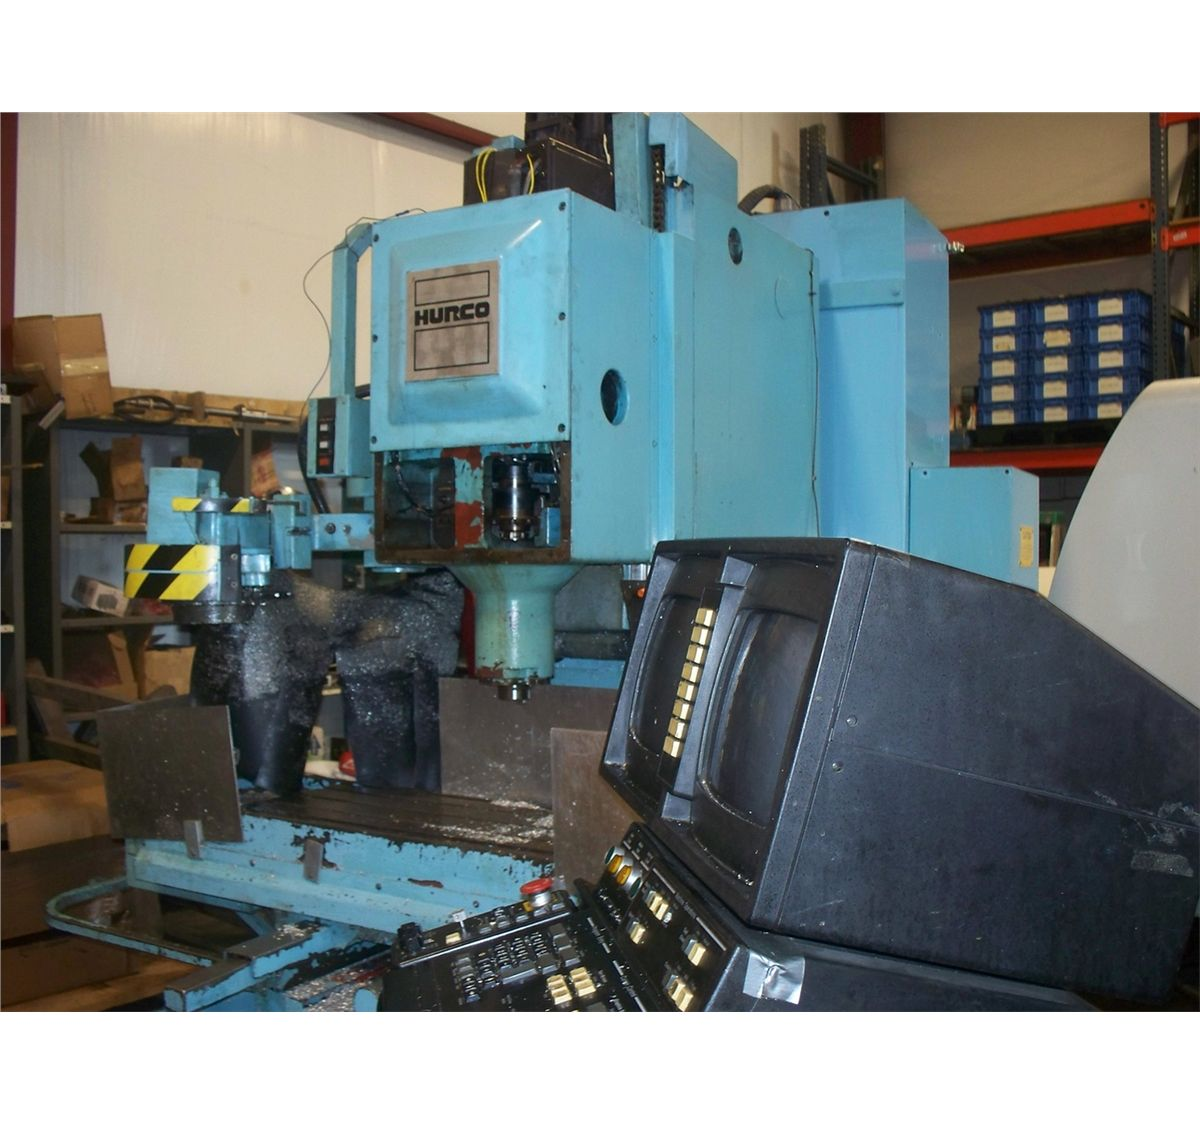 Hurco MB-1R CNC Mill with Ultimax control